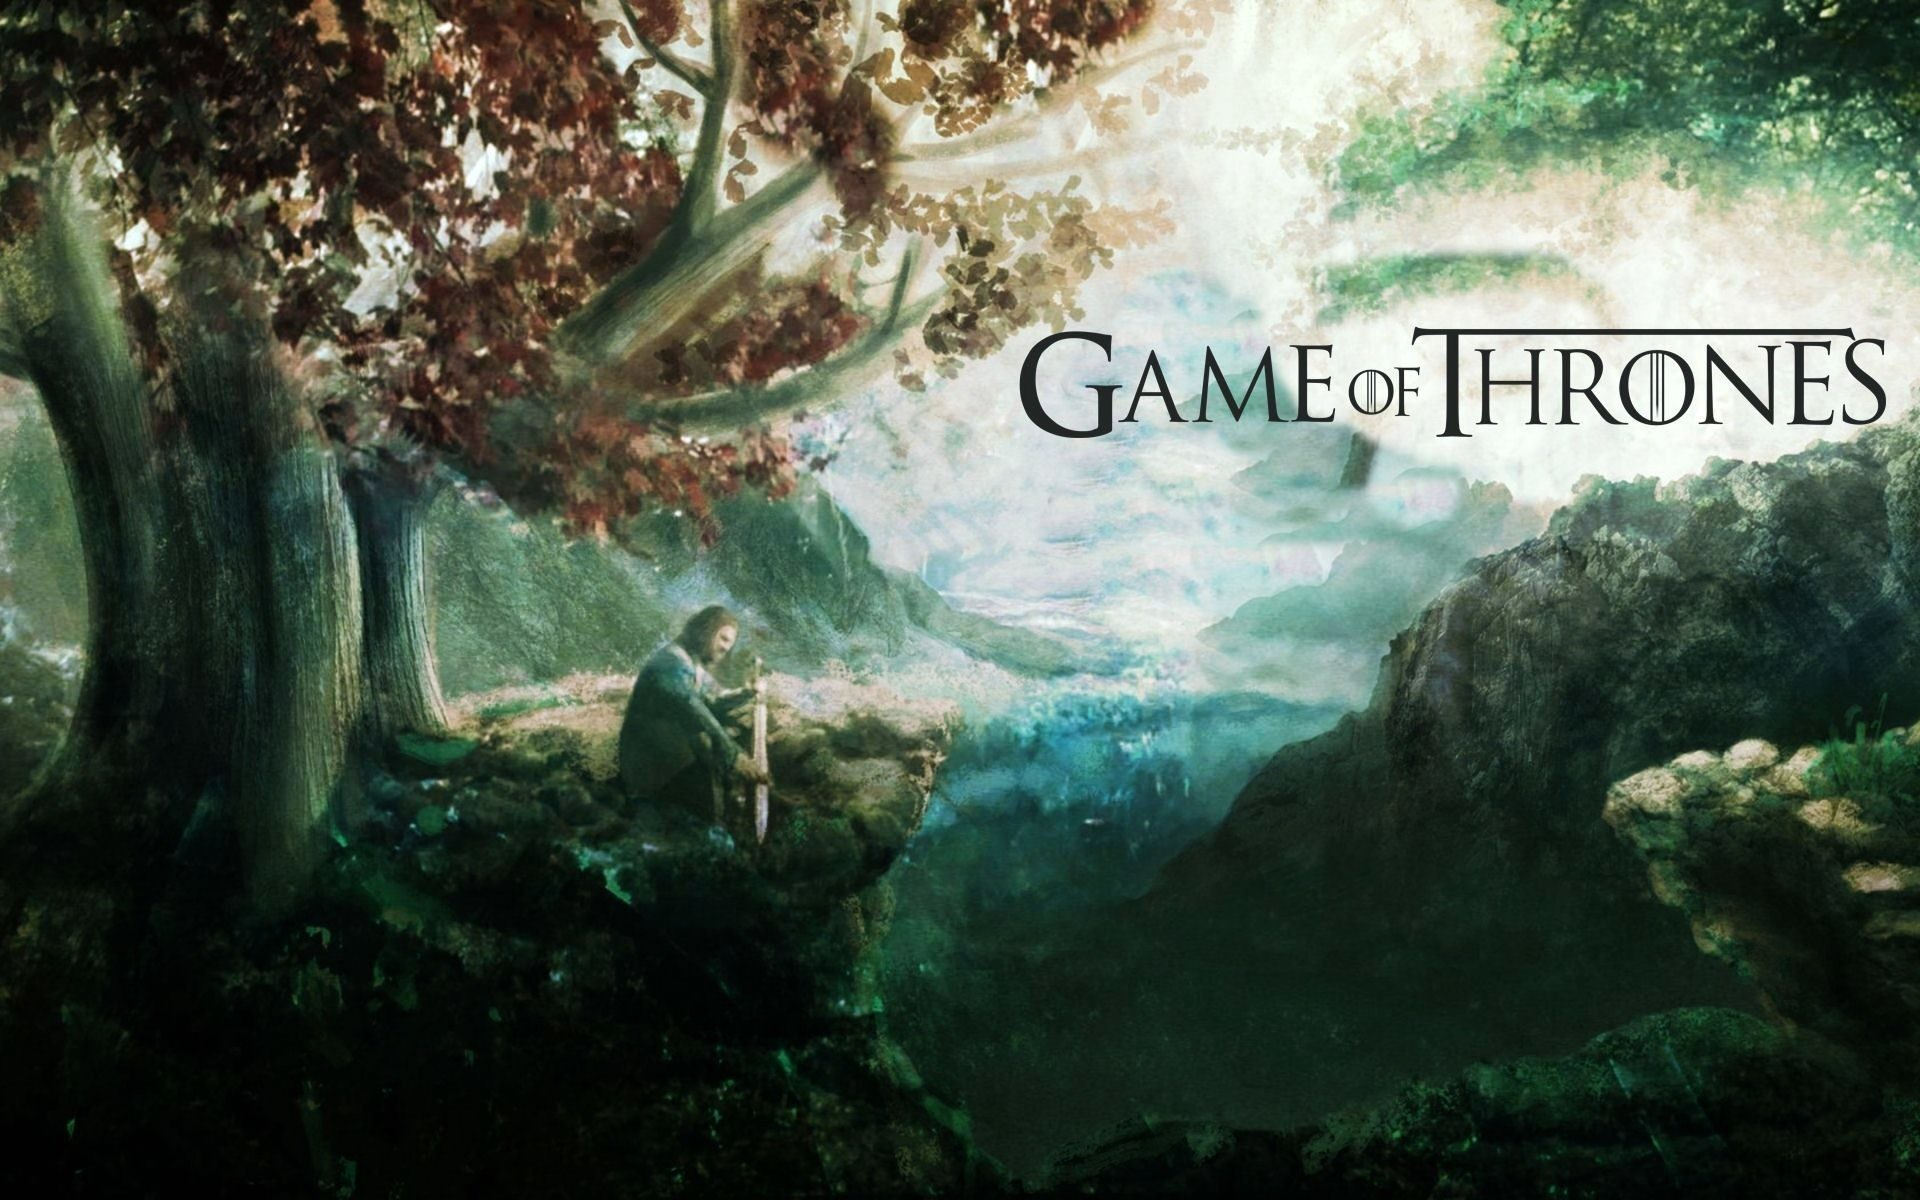 4k game of thrones wallpaper 66 images - Games hd wallpapers 1920x1200 ...